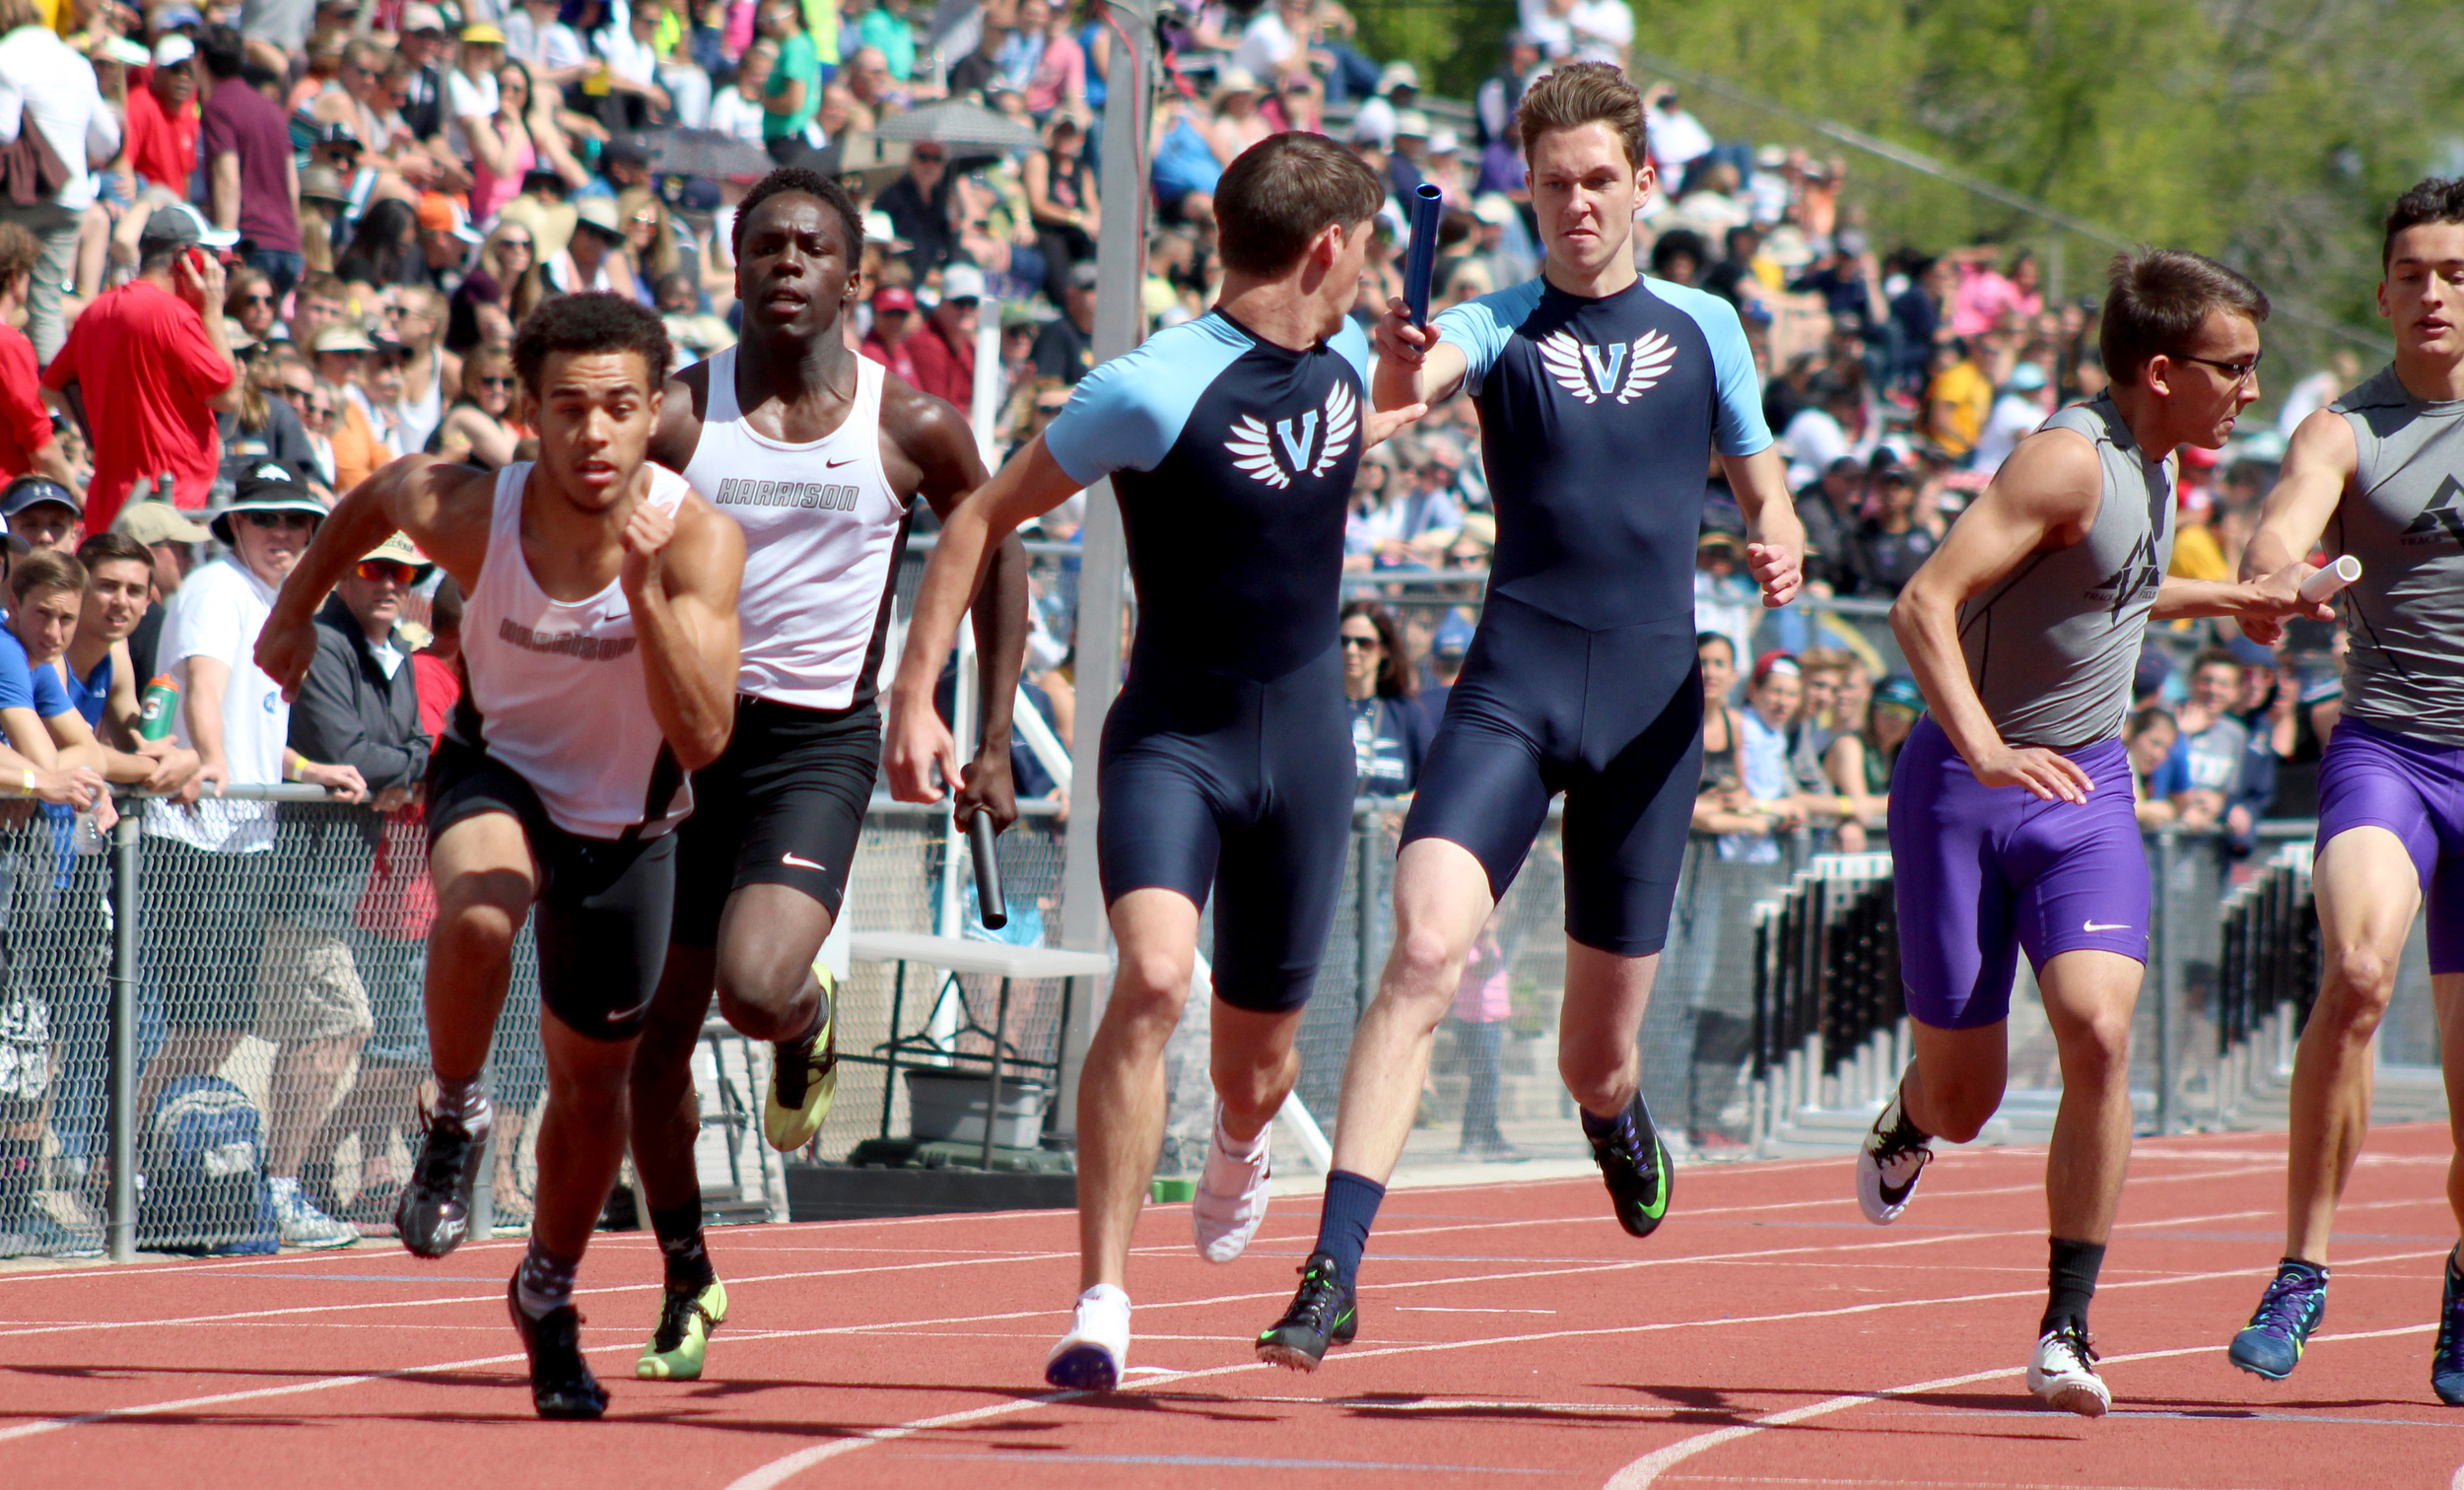 Senior Hunter Dagnon of Valor Christian hands off the baton to junior Chase McLean during the 4x200 relay race. Dagnon, McLean and seniors Christian Barber and Ben Waters clocked in at 1:27.57.  Published May 2016, Highlands Ranch Herald